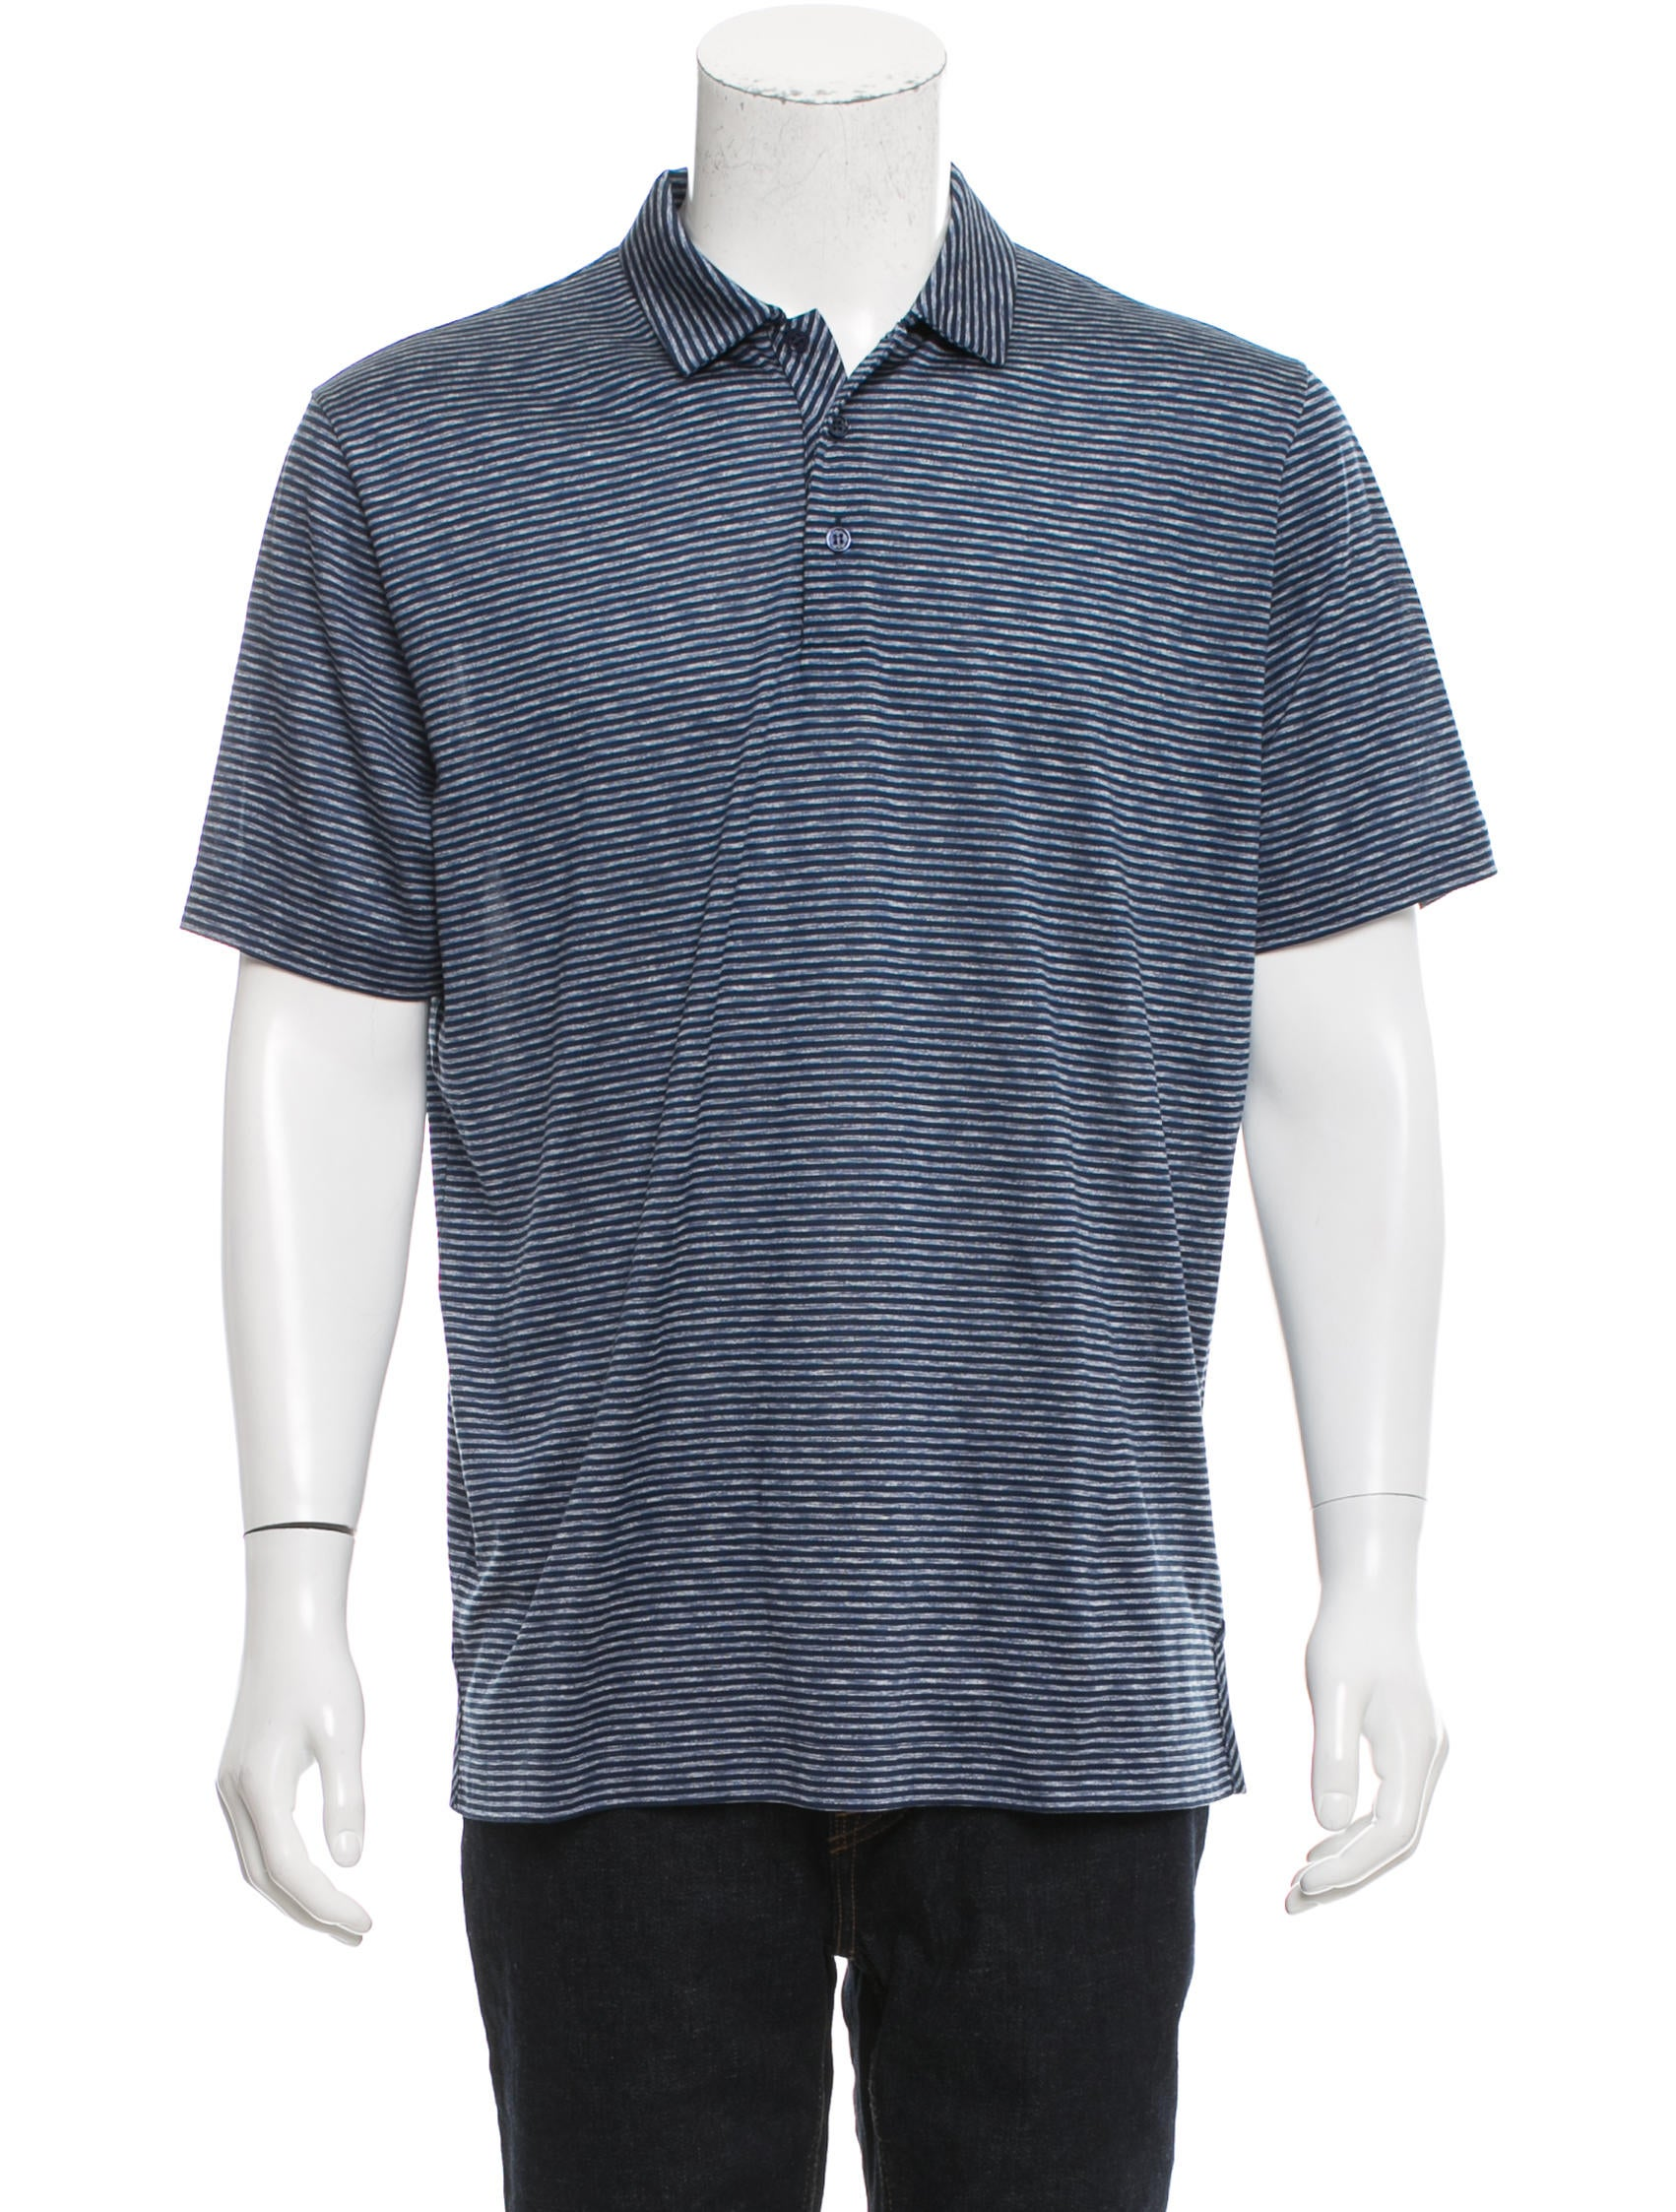 Canali Silk Polo Shirt W Tags Clothing Cnl20393 The